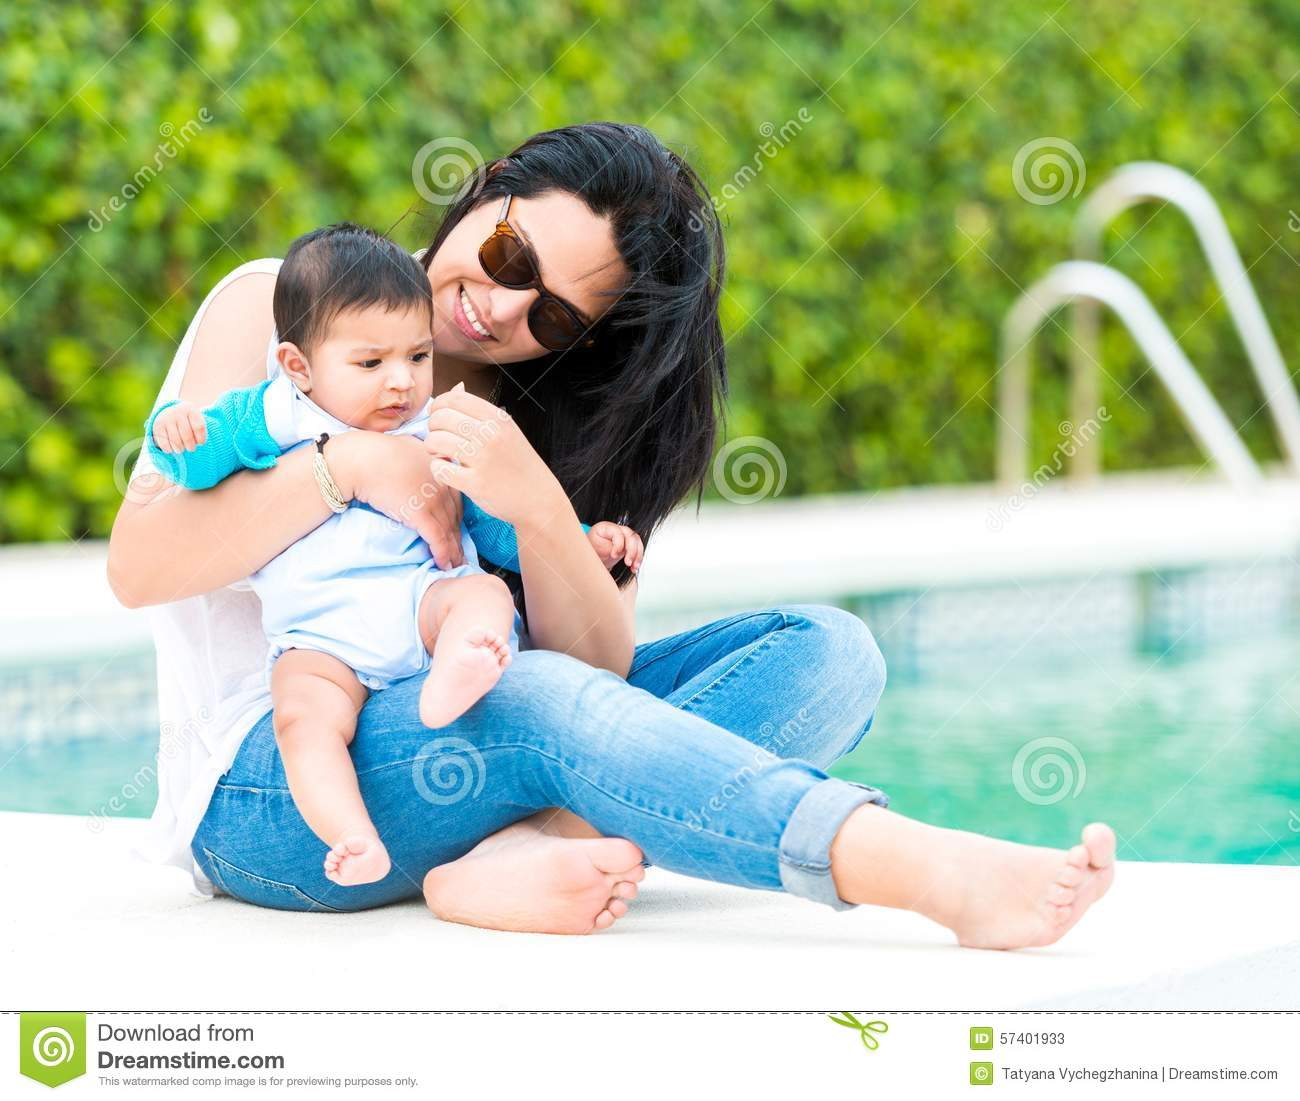 Young Mother With Her Baby Near The Swimming Pool Stock Photo Image 57401933